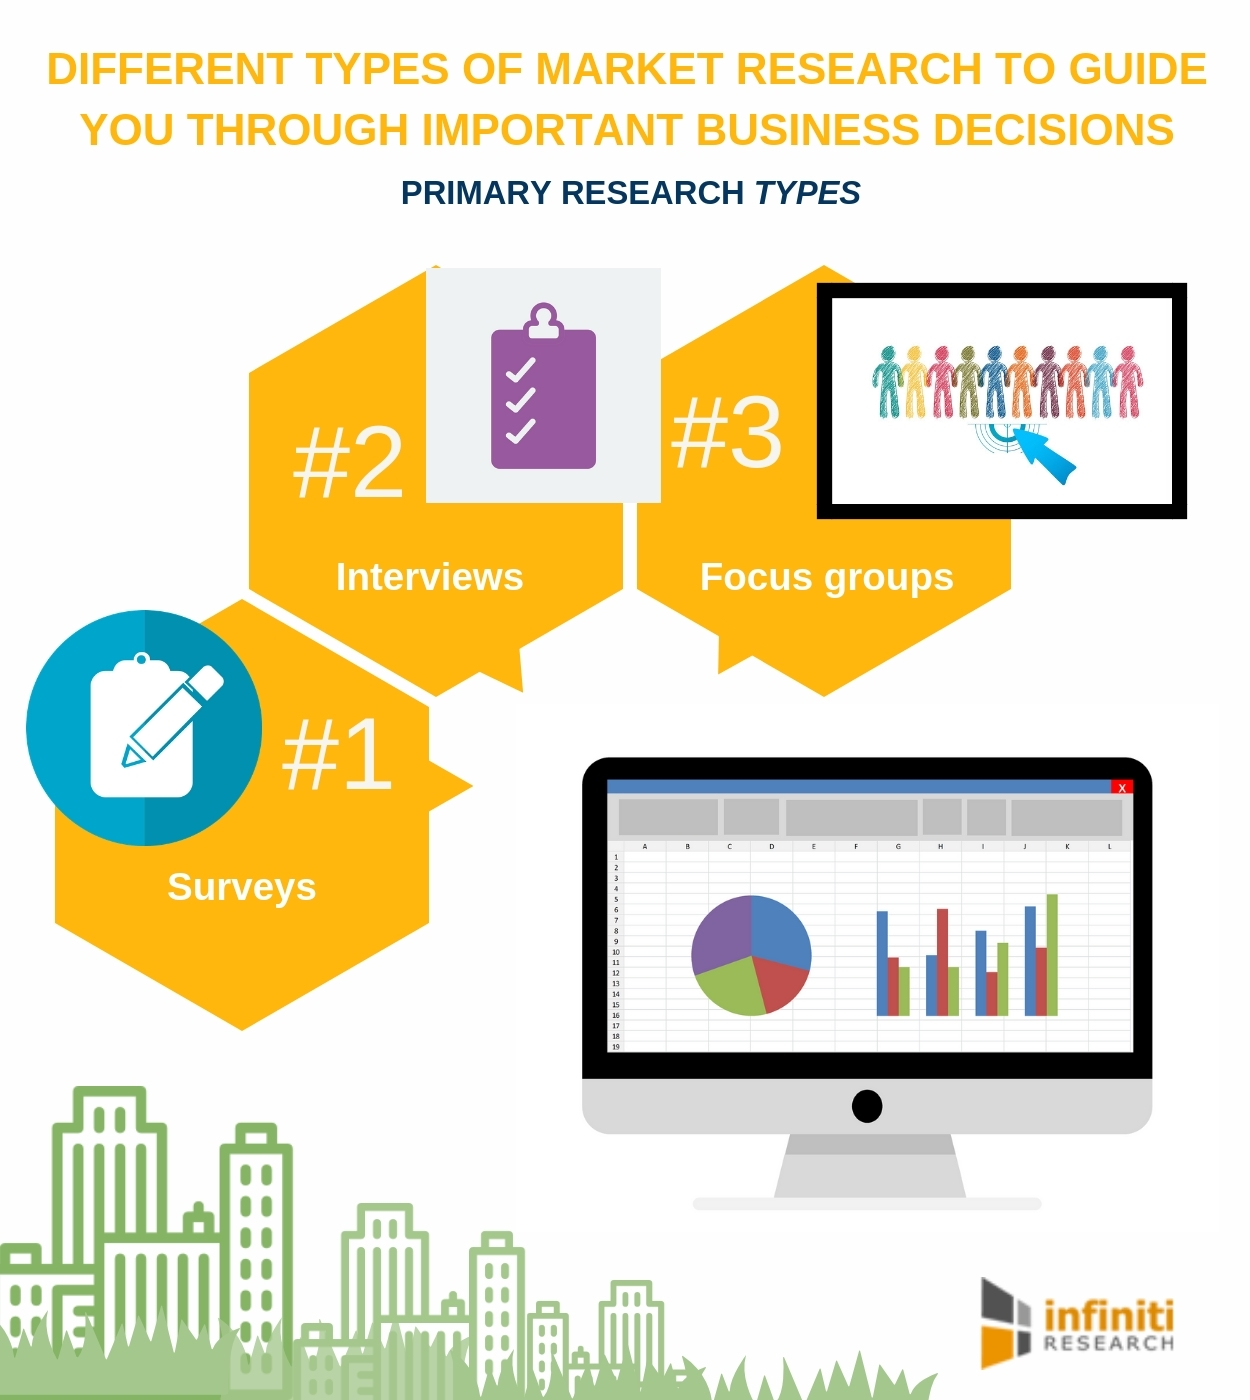 infiniti research reveals the common types of market research